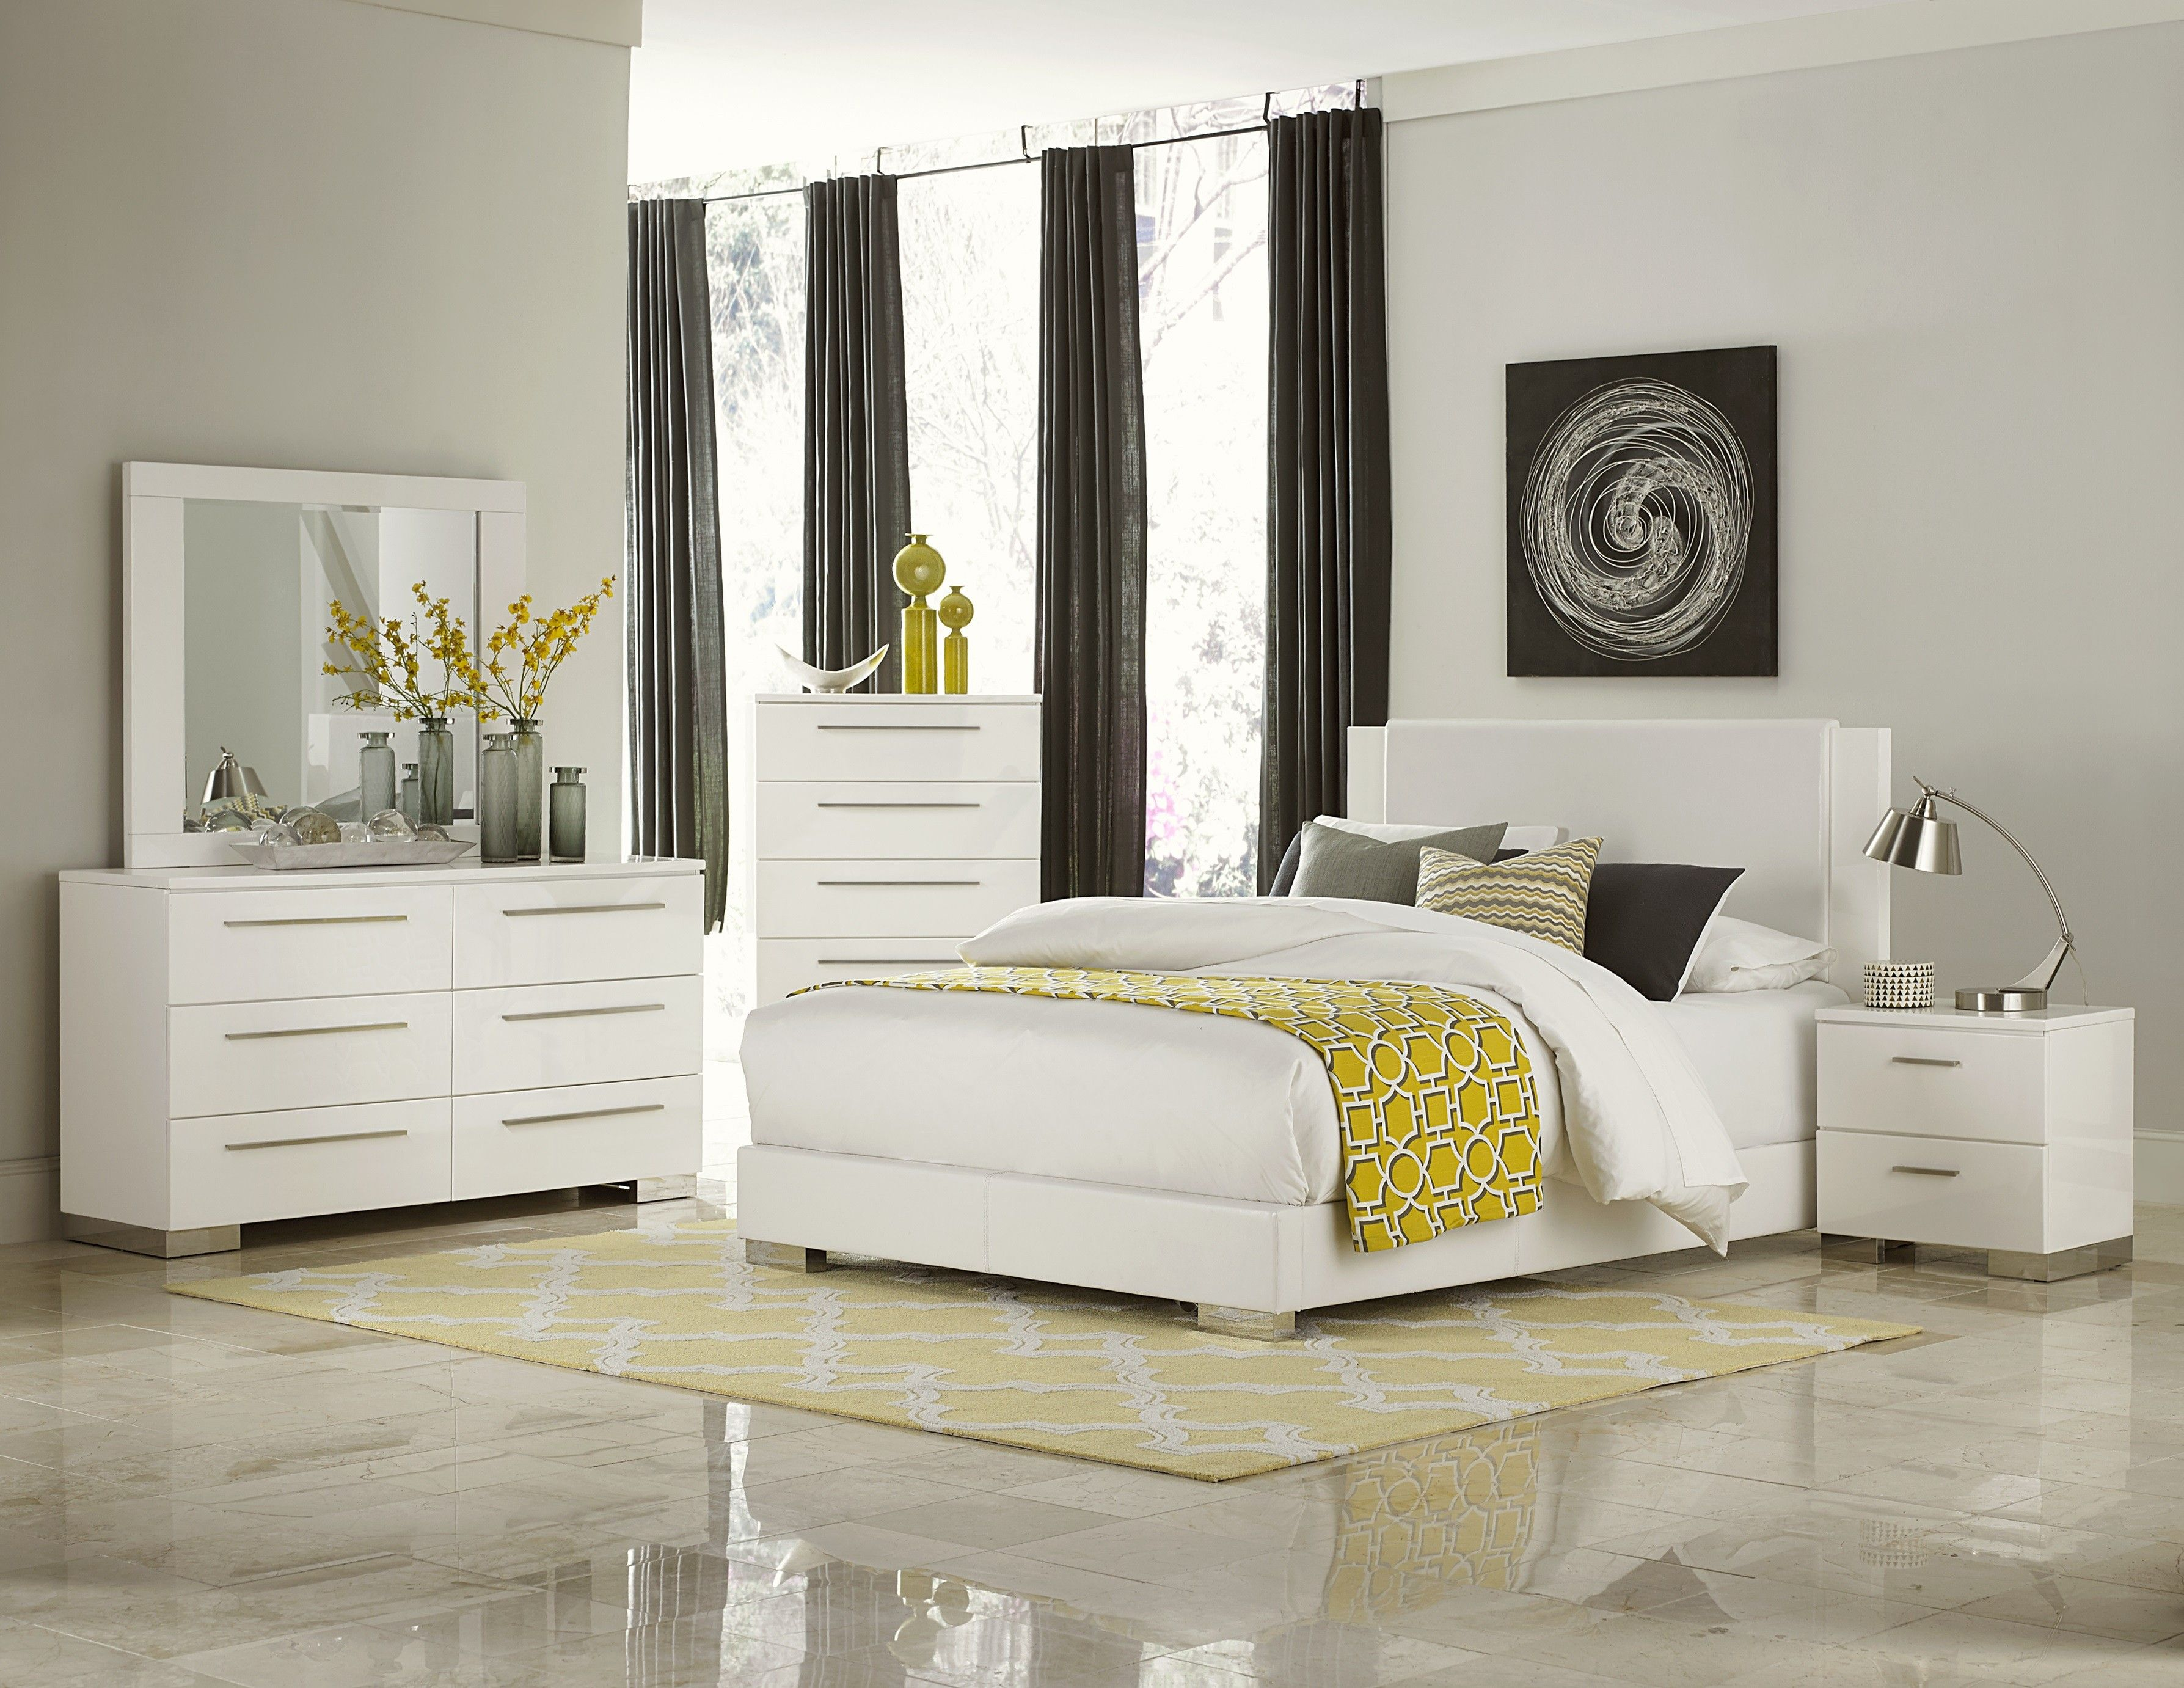 Retro Upholstered White Lacquer Bedroom King Bedroom Sets